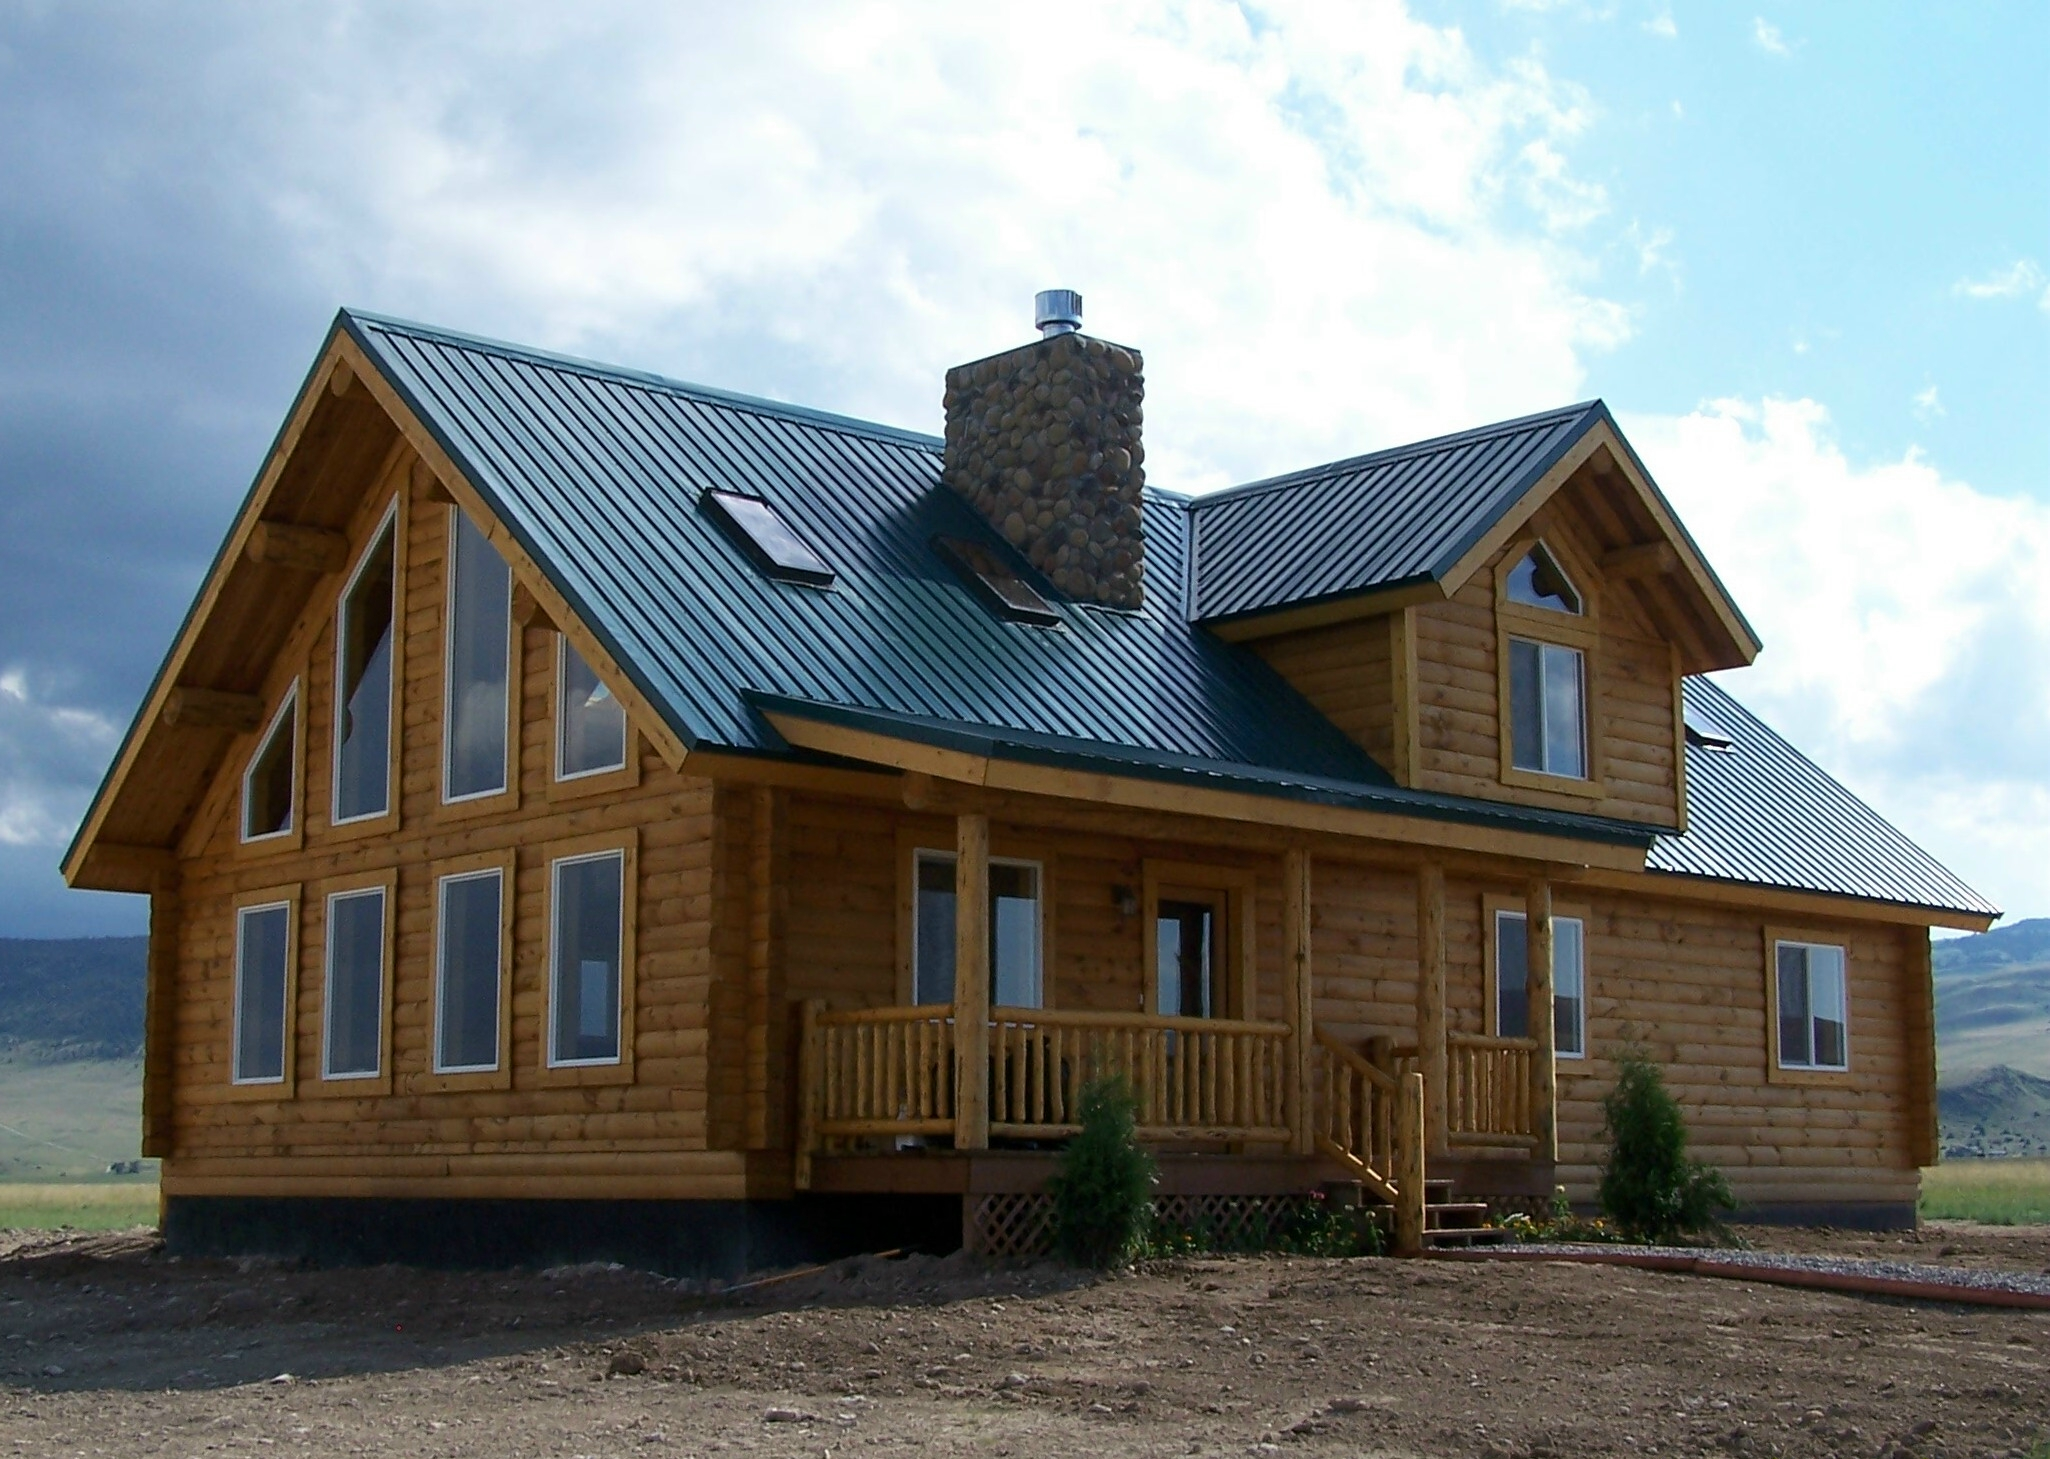 Log homes 1 000 to 2 000 square feet cowboy log homes for Log homes under 1000 square feet